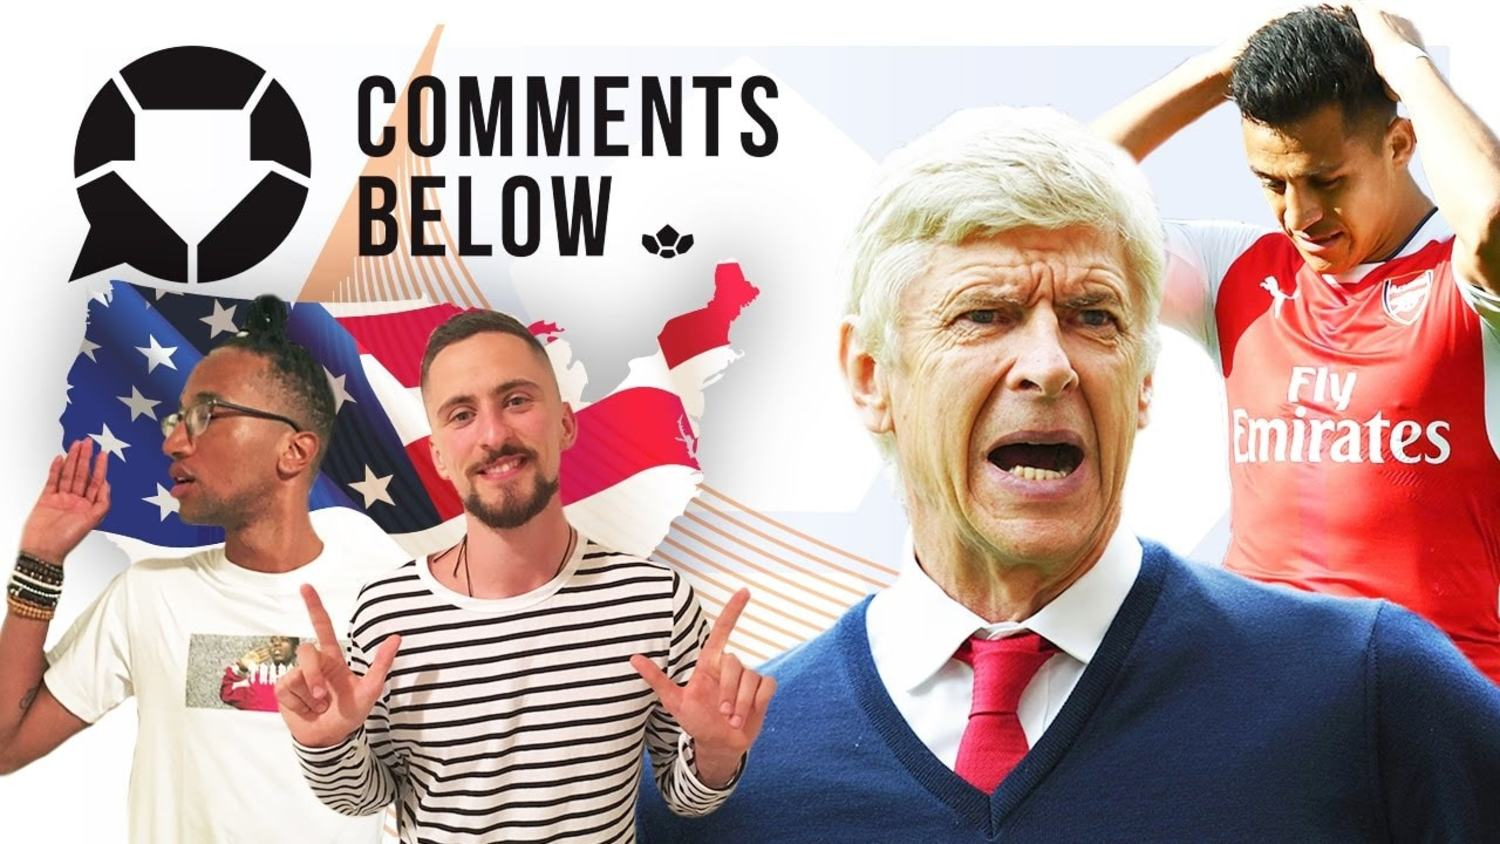 Has Arsene Wenger Turned Arsenal In To A Joke? | Comments Below